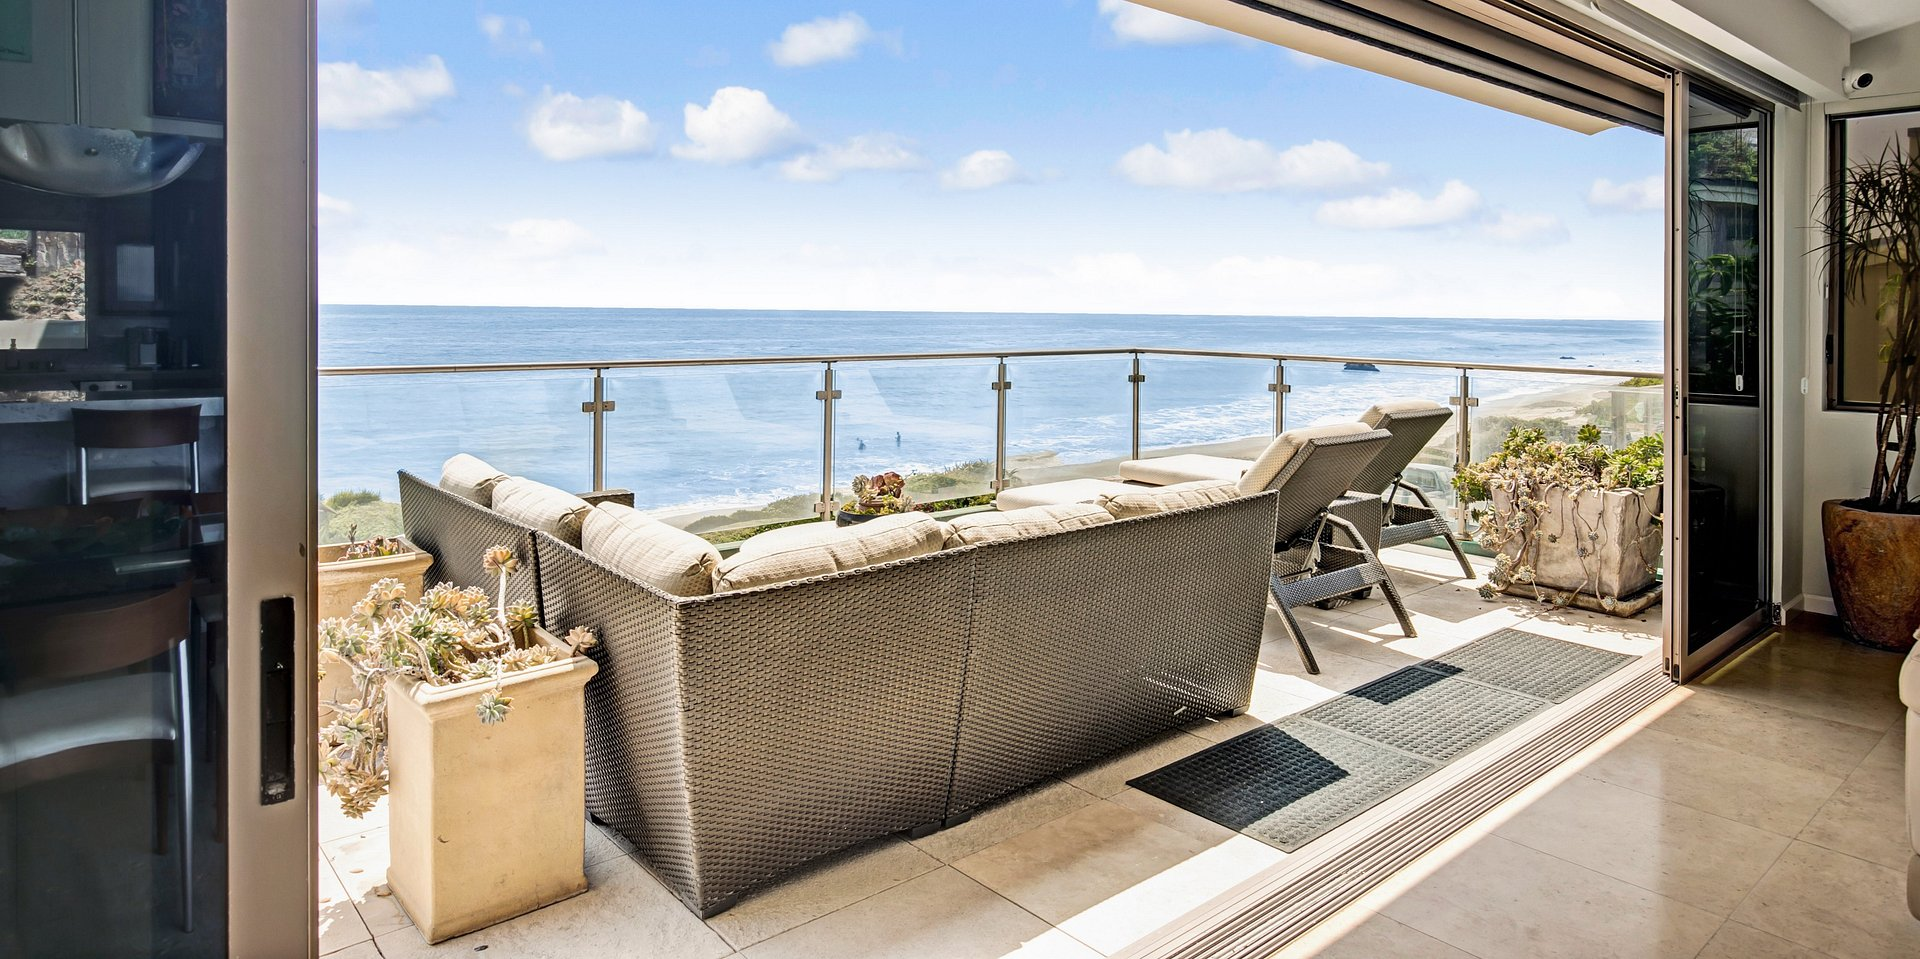 Coldwell Banker Residential Brokerage Lists Beachfront Malibu Property for $7.495 Million